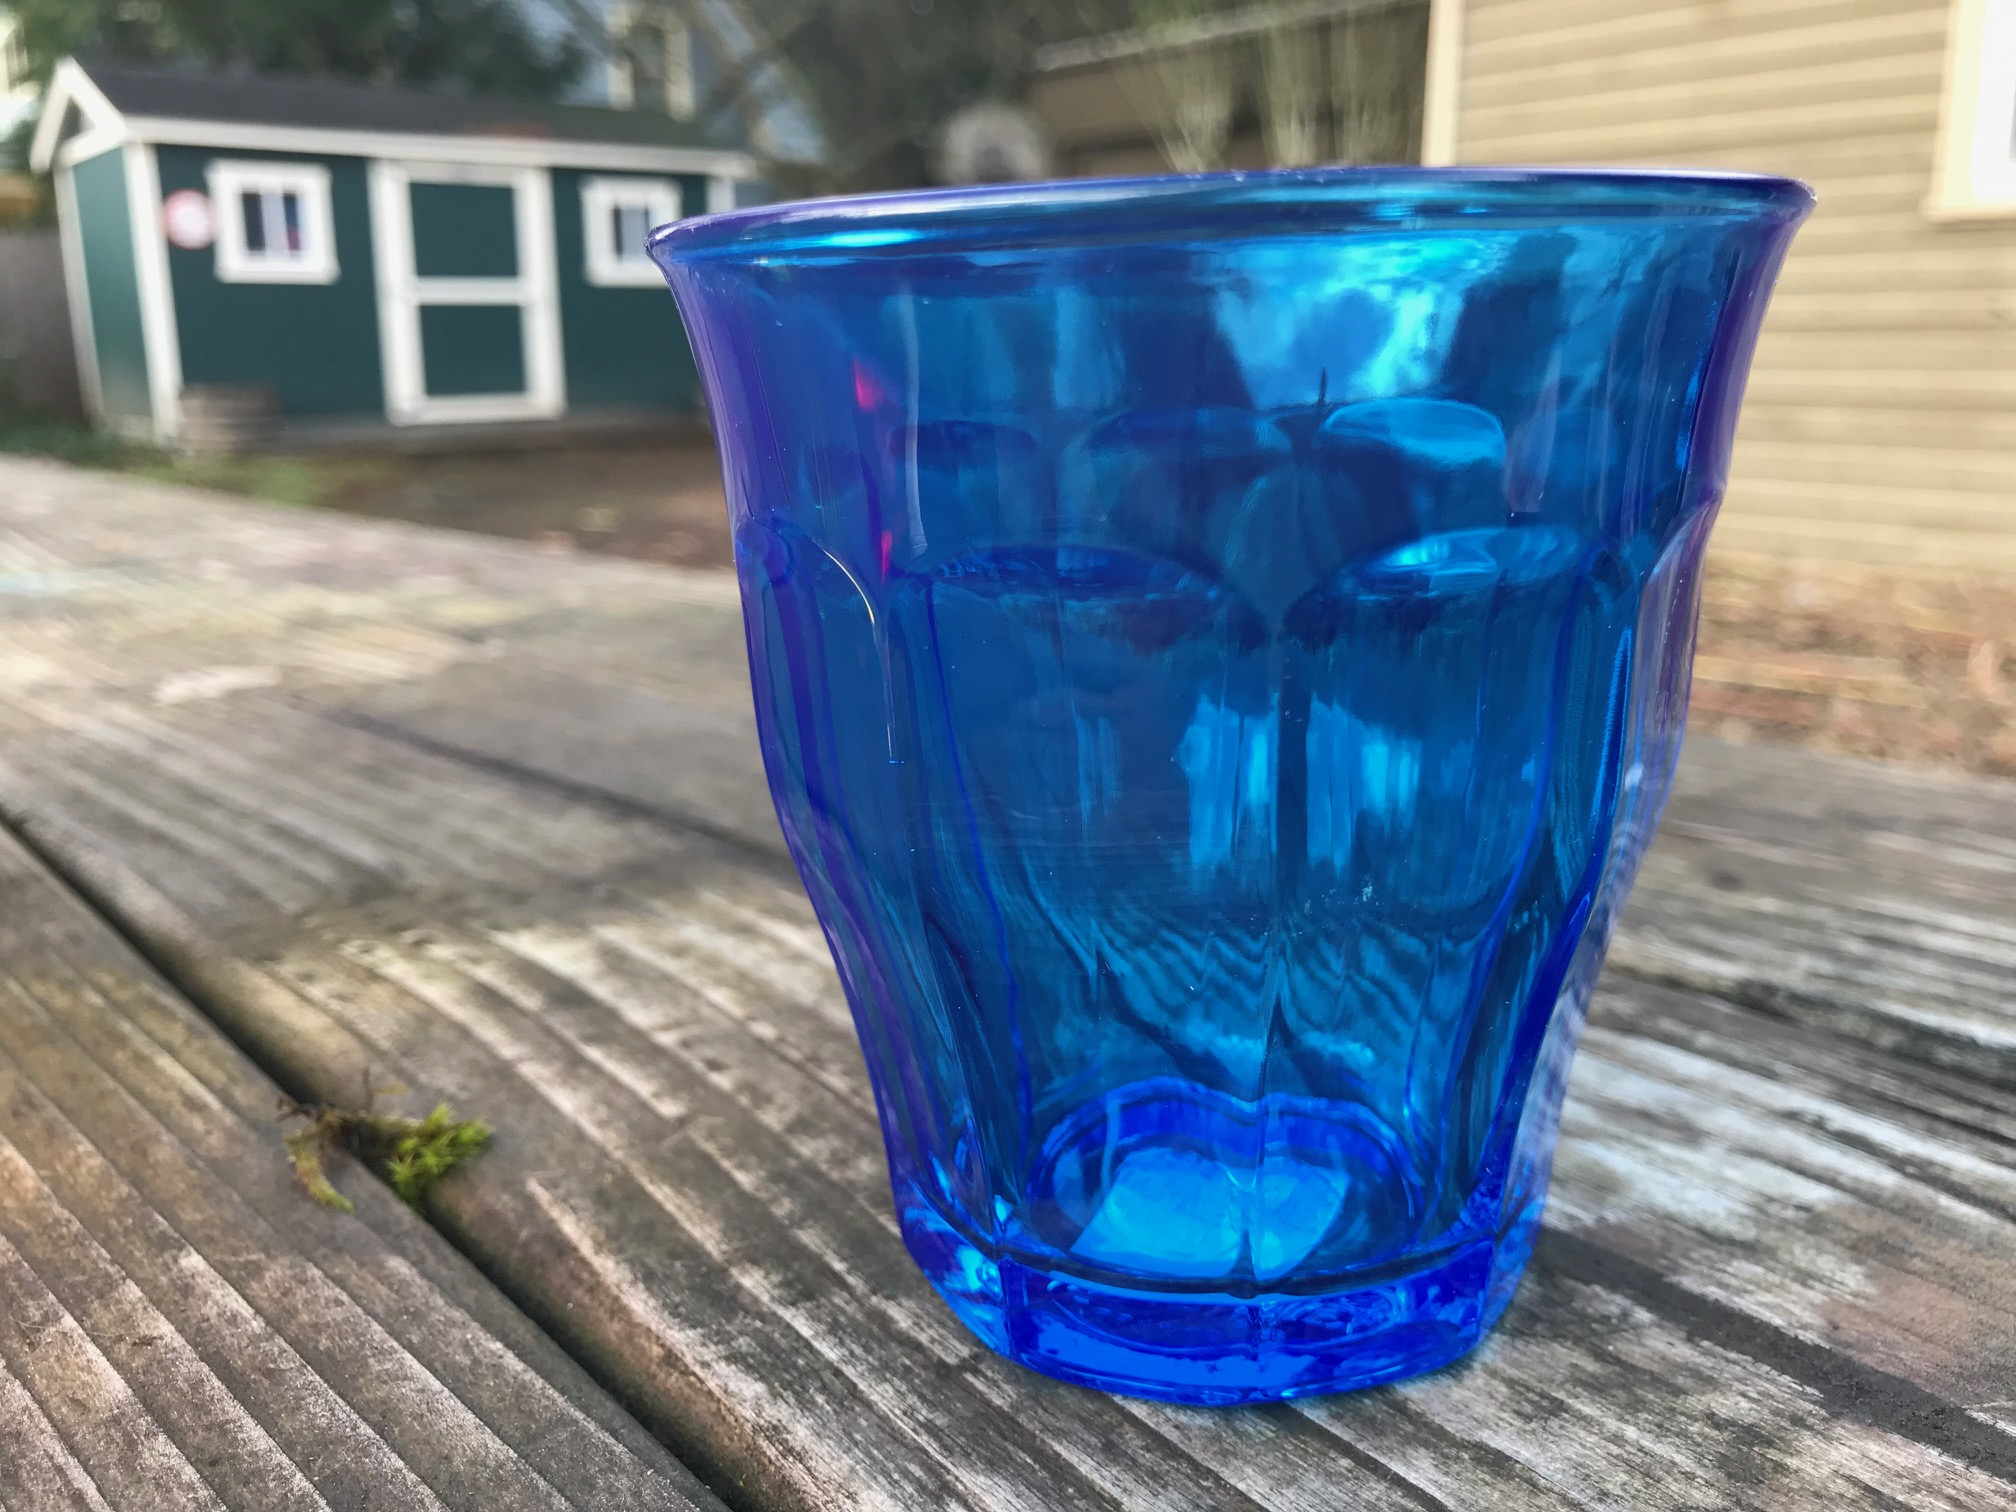 Blue Duralex Picardie Colors Tumbler from Rainbow Set: Lead-Free, Arsenic-Free, Cadmium-Free and Mercury-Free!